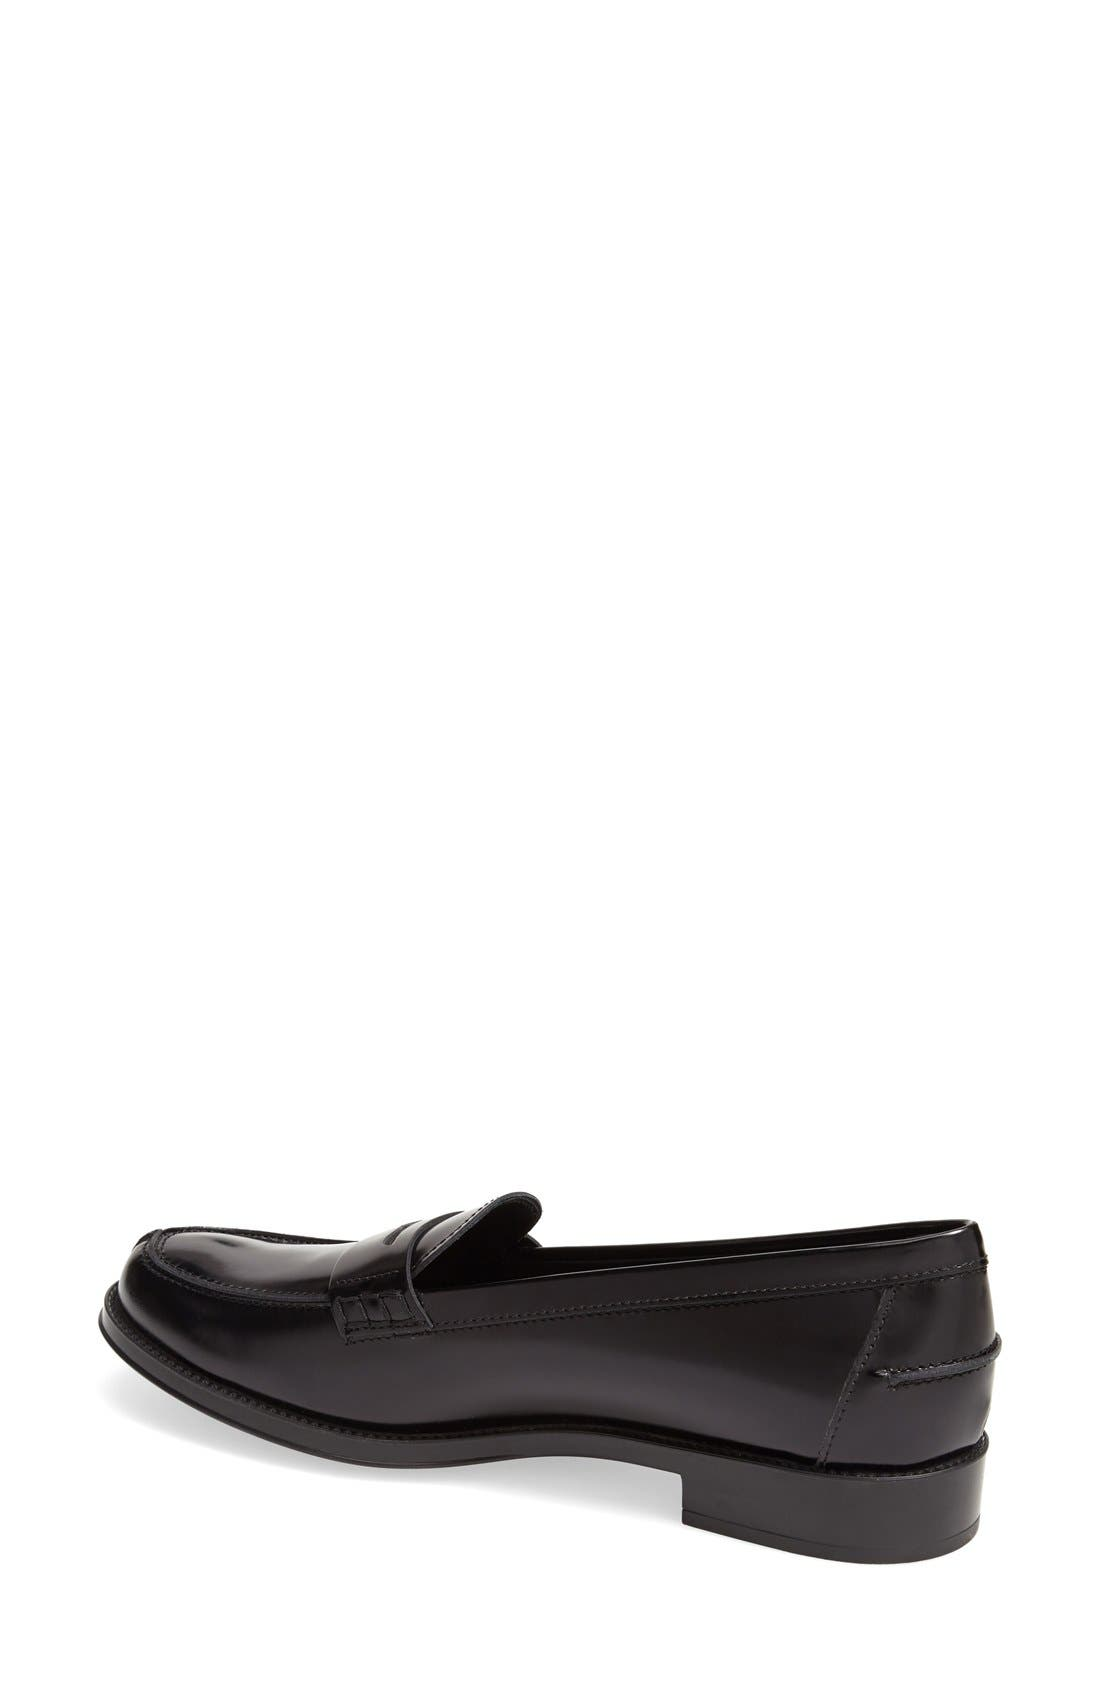 Alternate Image 2  - Tod's Penny Loafer (Women)